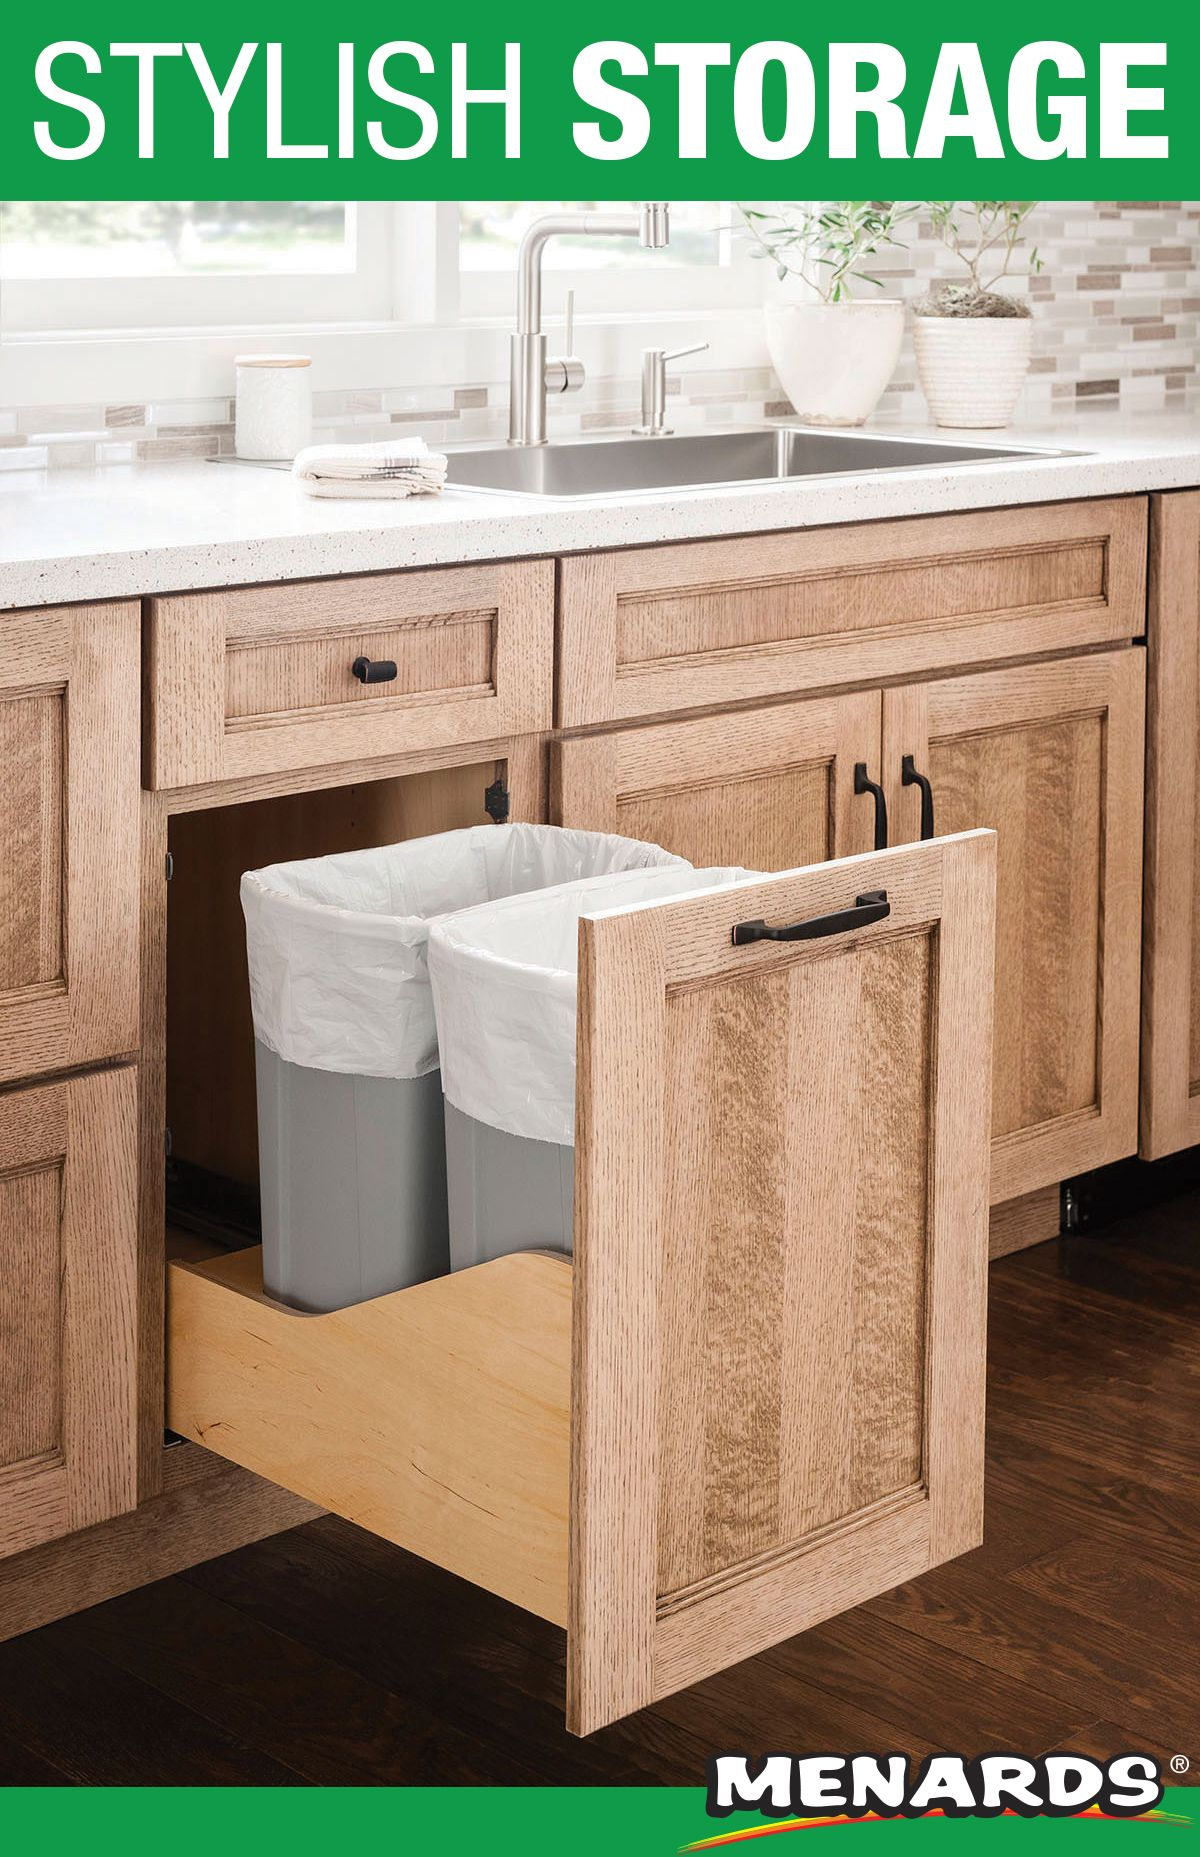 Keep Your Garbage And Recycling Tidy And Tucked Away With Medallion Cabinetry Stora Kitchen Renovation Natural Wood Kitchen Cabinets White Kitchen Countertops